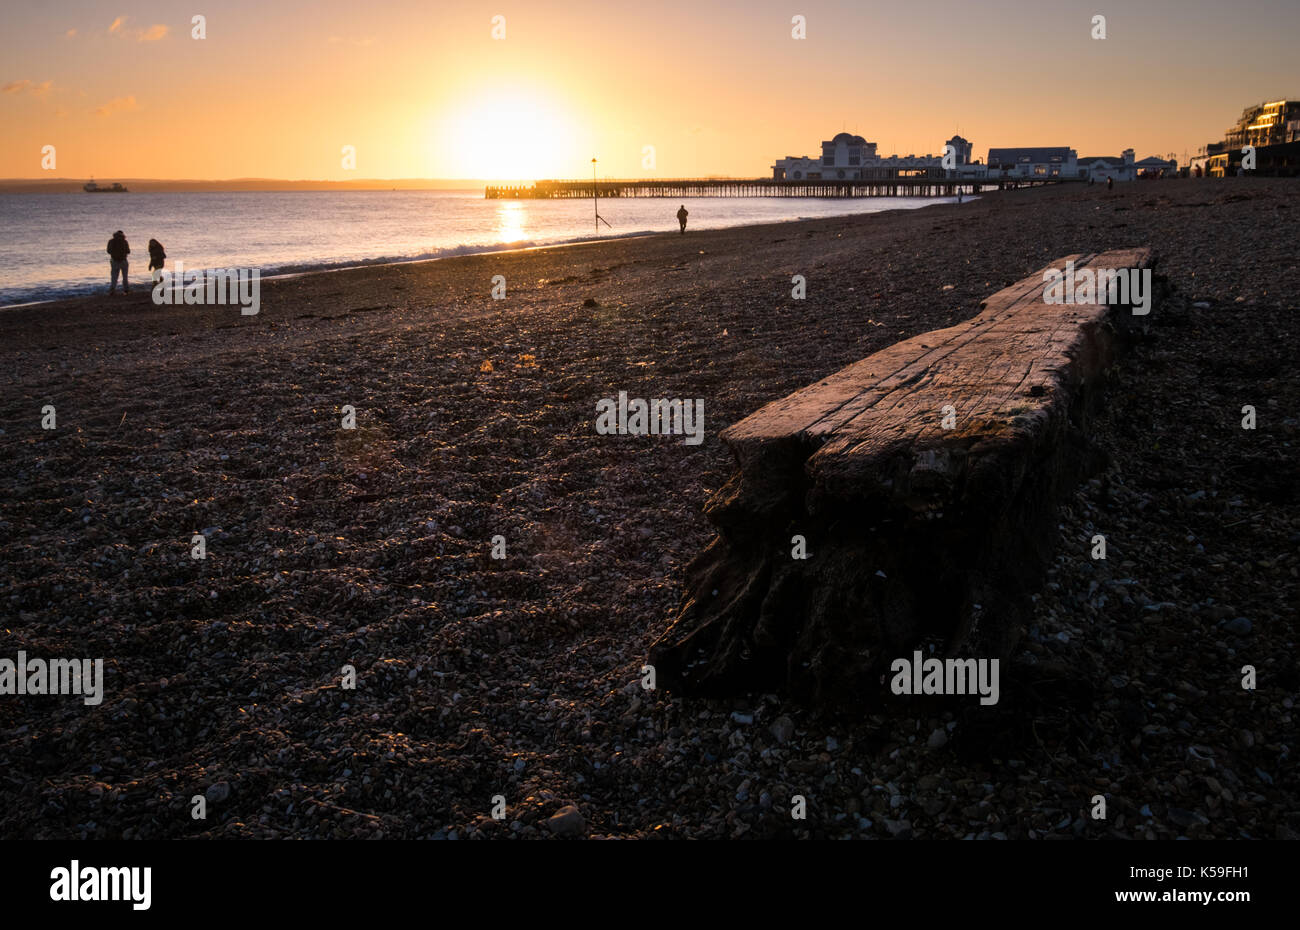 A large piece of driftwood on the beach at Southsea Beach as th Sun sets over Southsea Pier - Stock Image